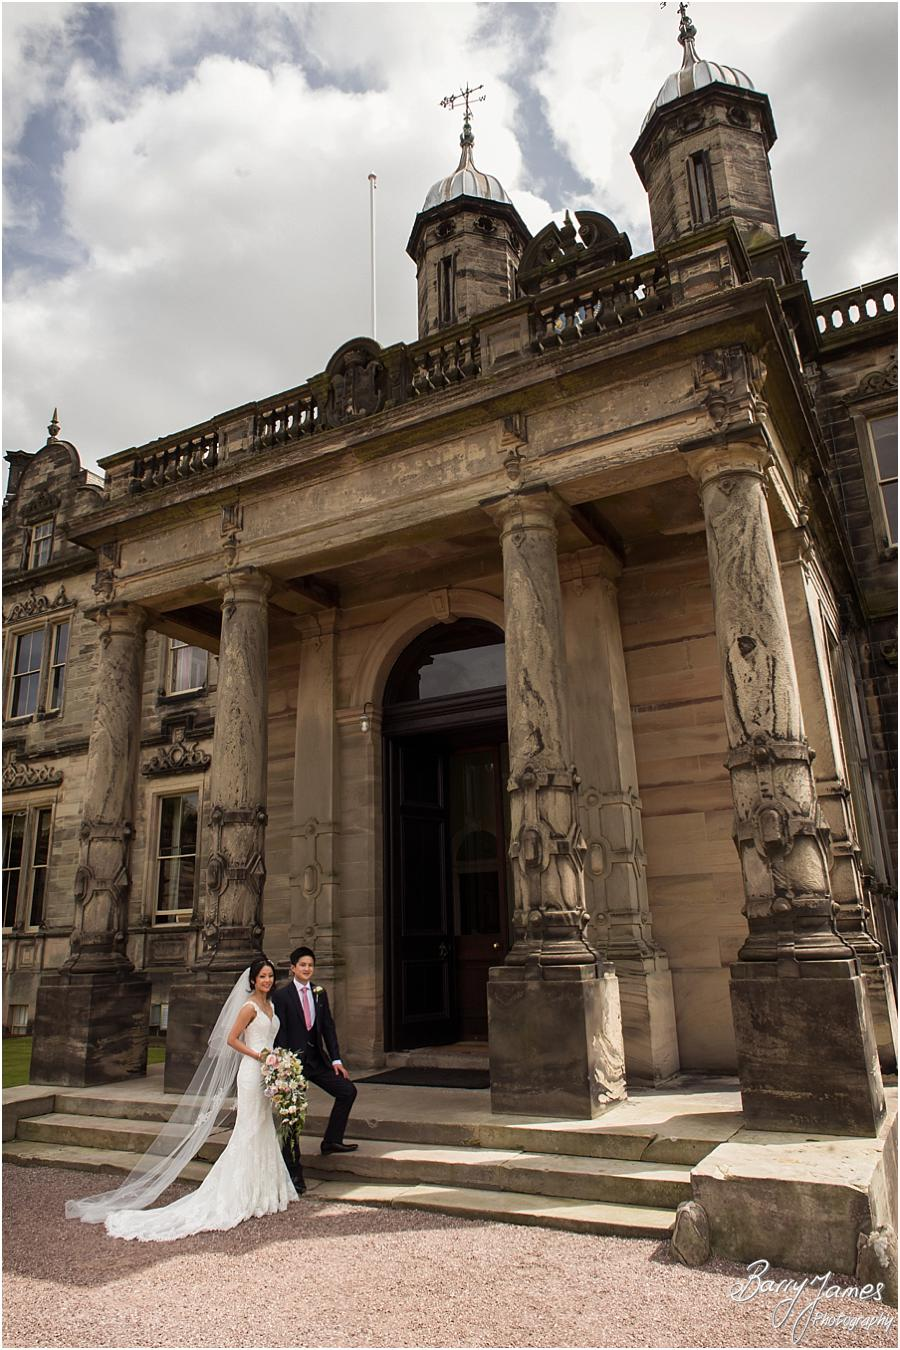 Contemporary portraits of the Bride and Groom at Sandon Hall in Stafford by Stafford Wedding Photographer Barry James